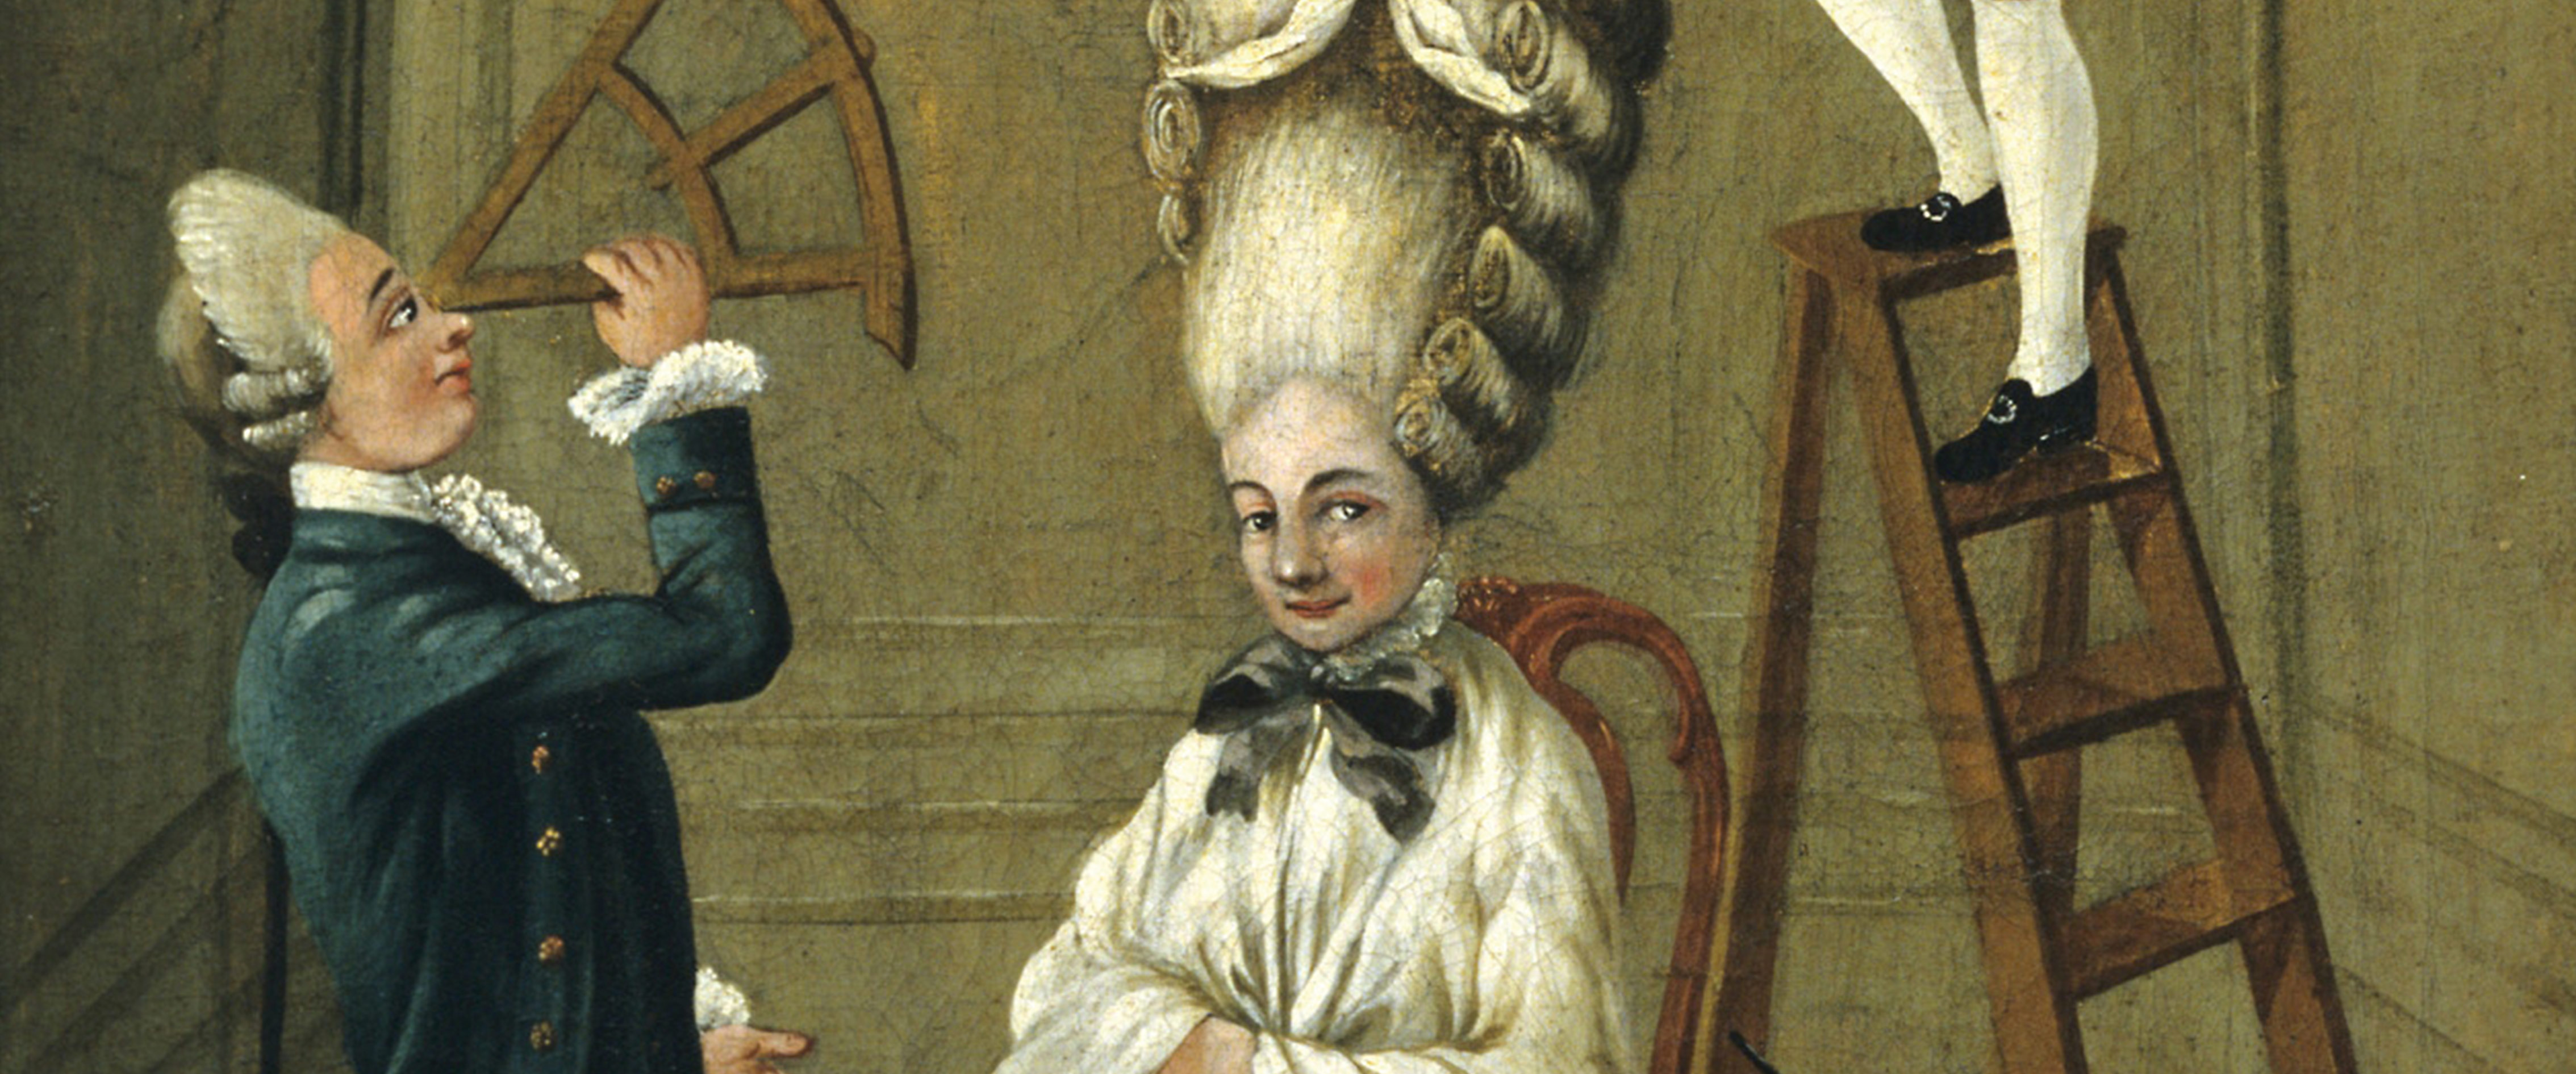 Detail of Ridiculous Taste or the Ladies Absurdity, oil on canvas painted on the reverse of a possible signboard, c. 1780 by Lunc Kulturen, Sweden.